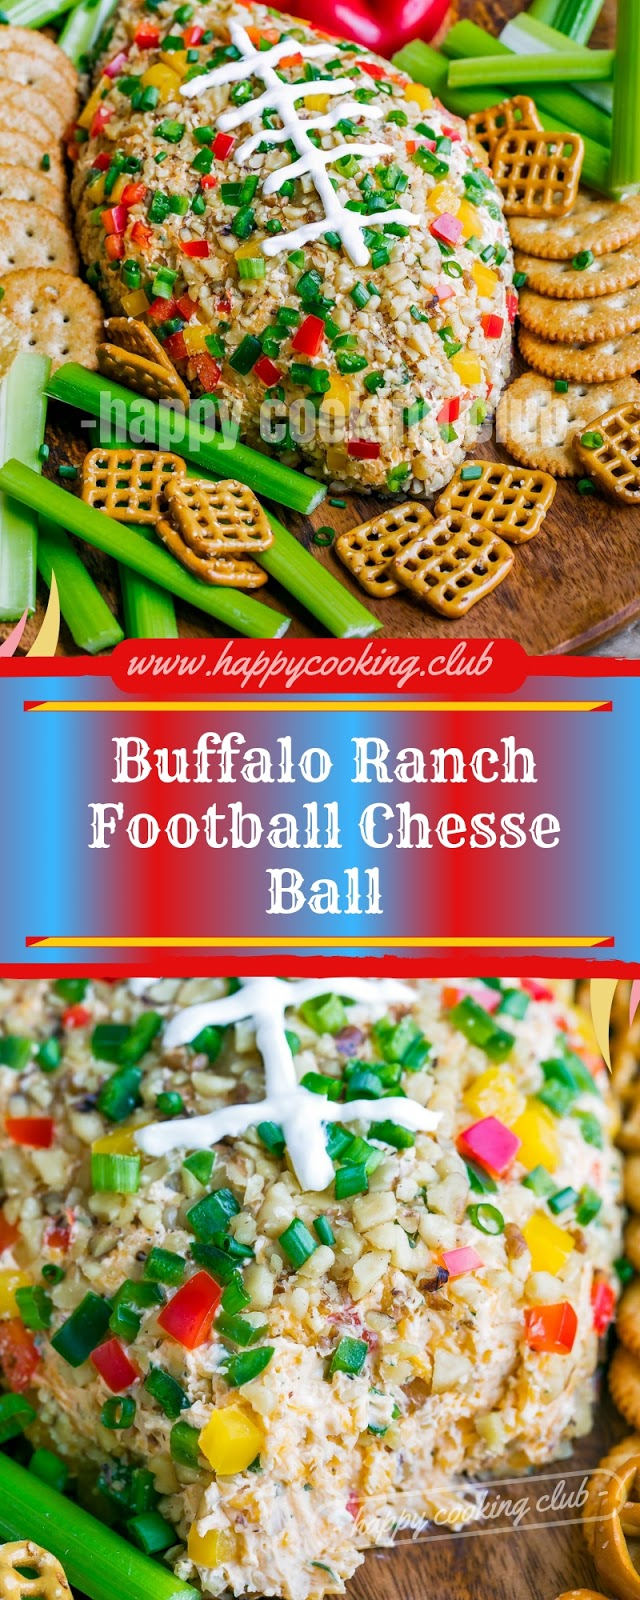 Buffalo Ranch Football Chesse Ball